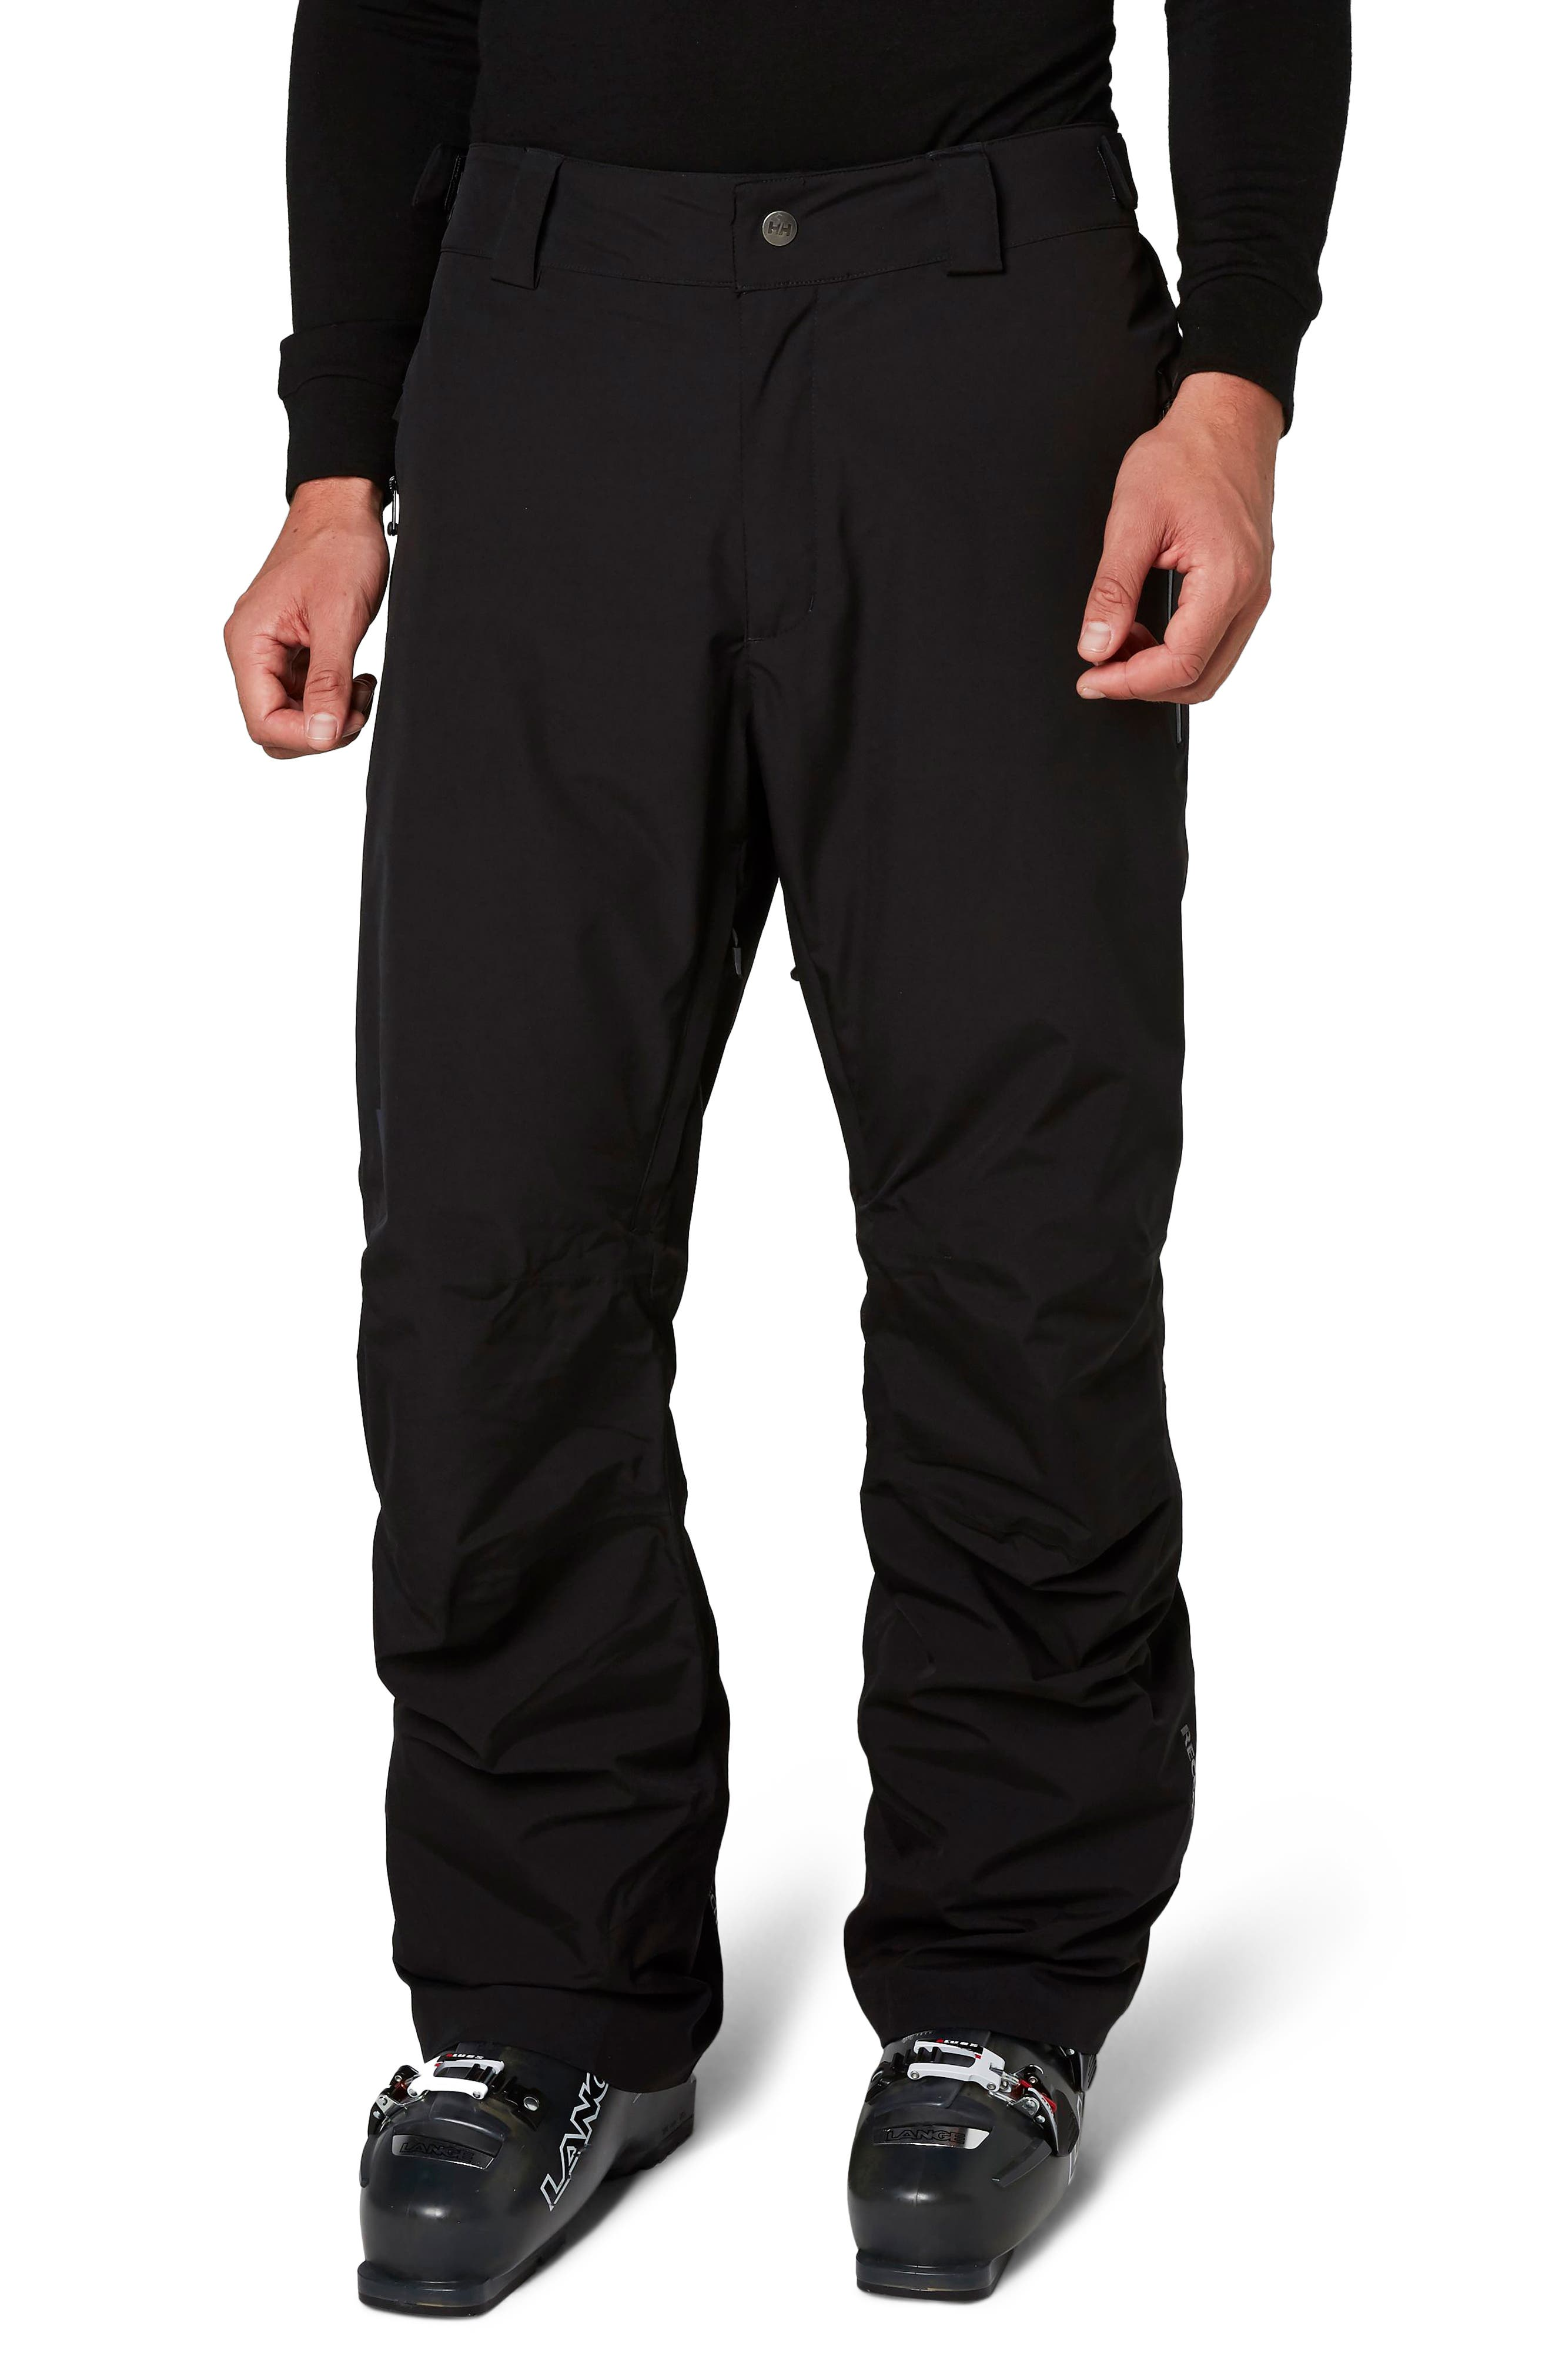 Legendary - Short Waterproof PrimaLoft Insulated Snow Pants,                         Main,                         color, Black